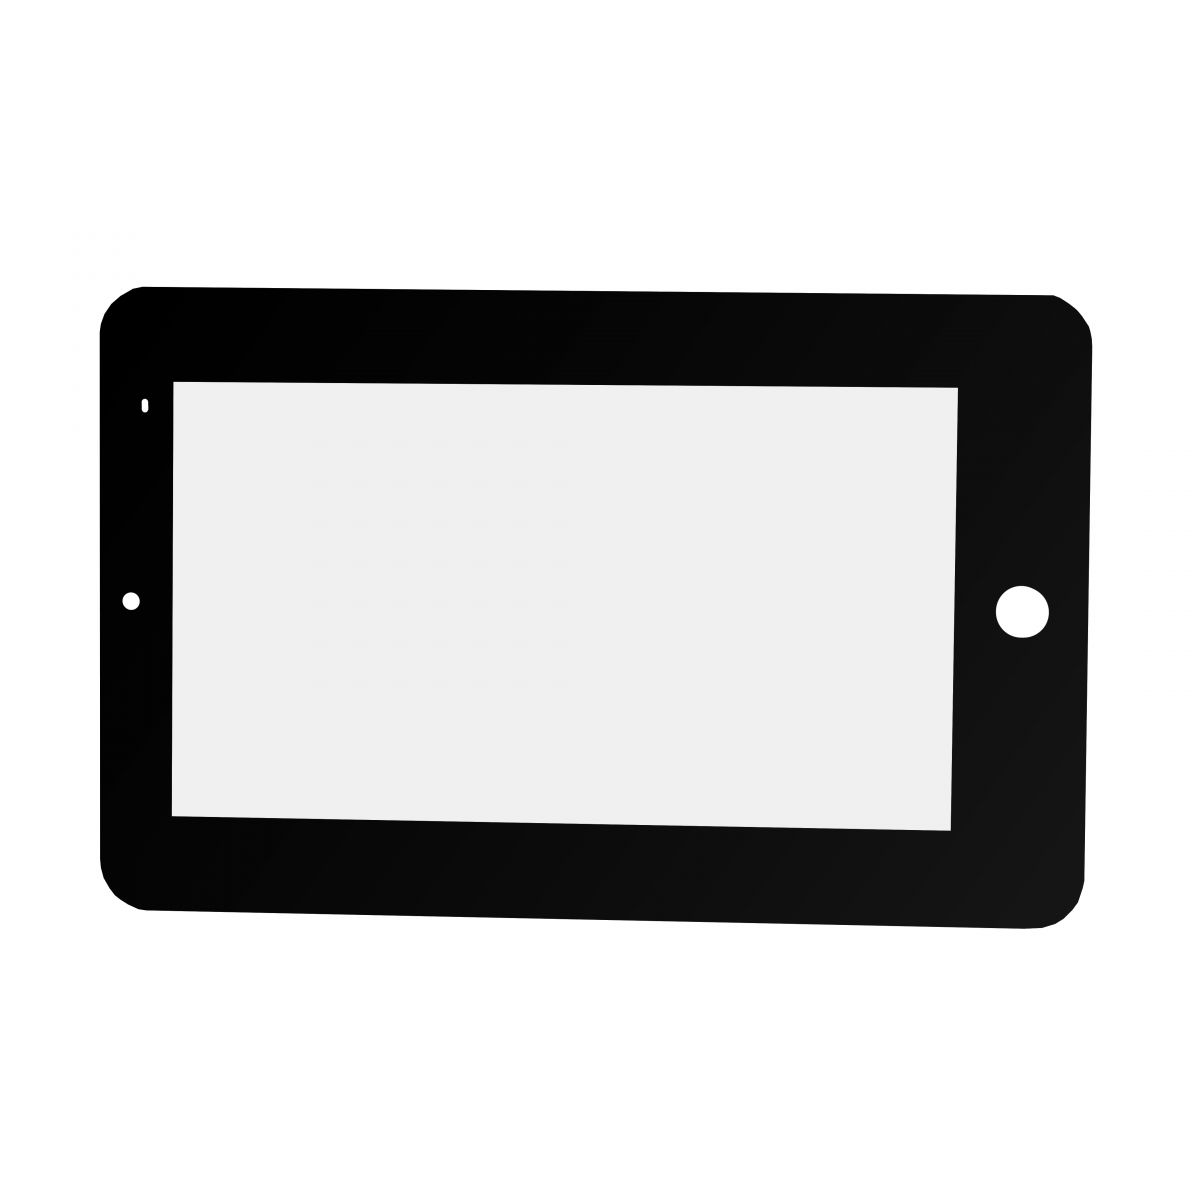 Membrana Plastica p/ Touch Tablet 7